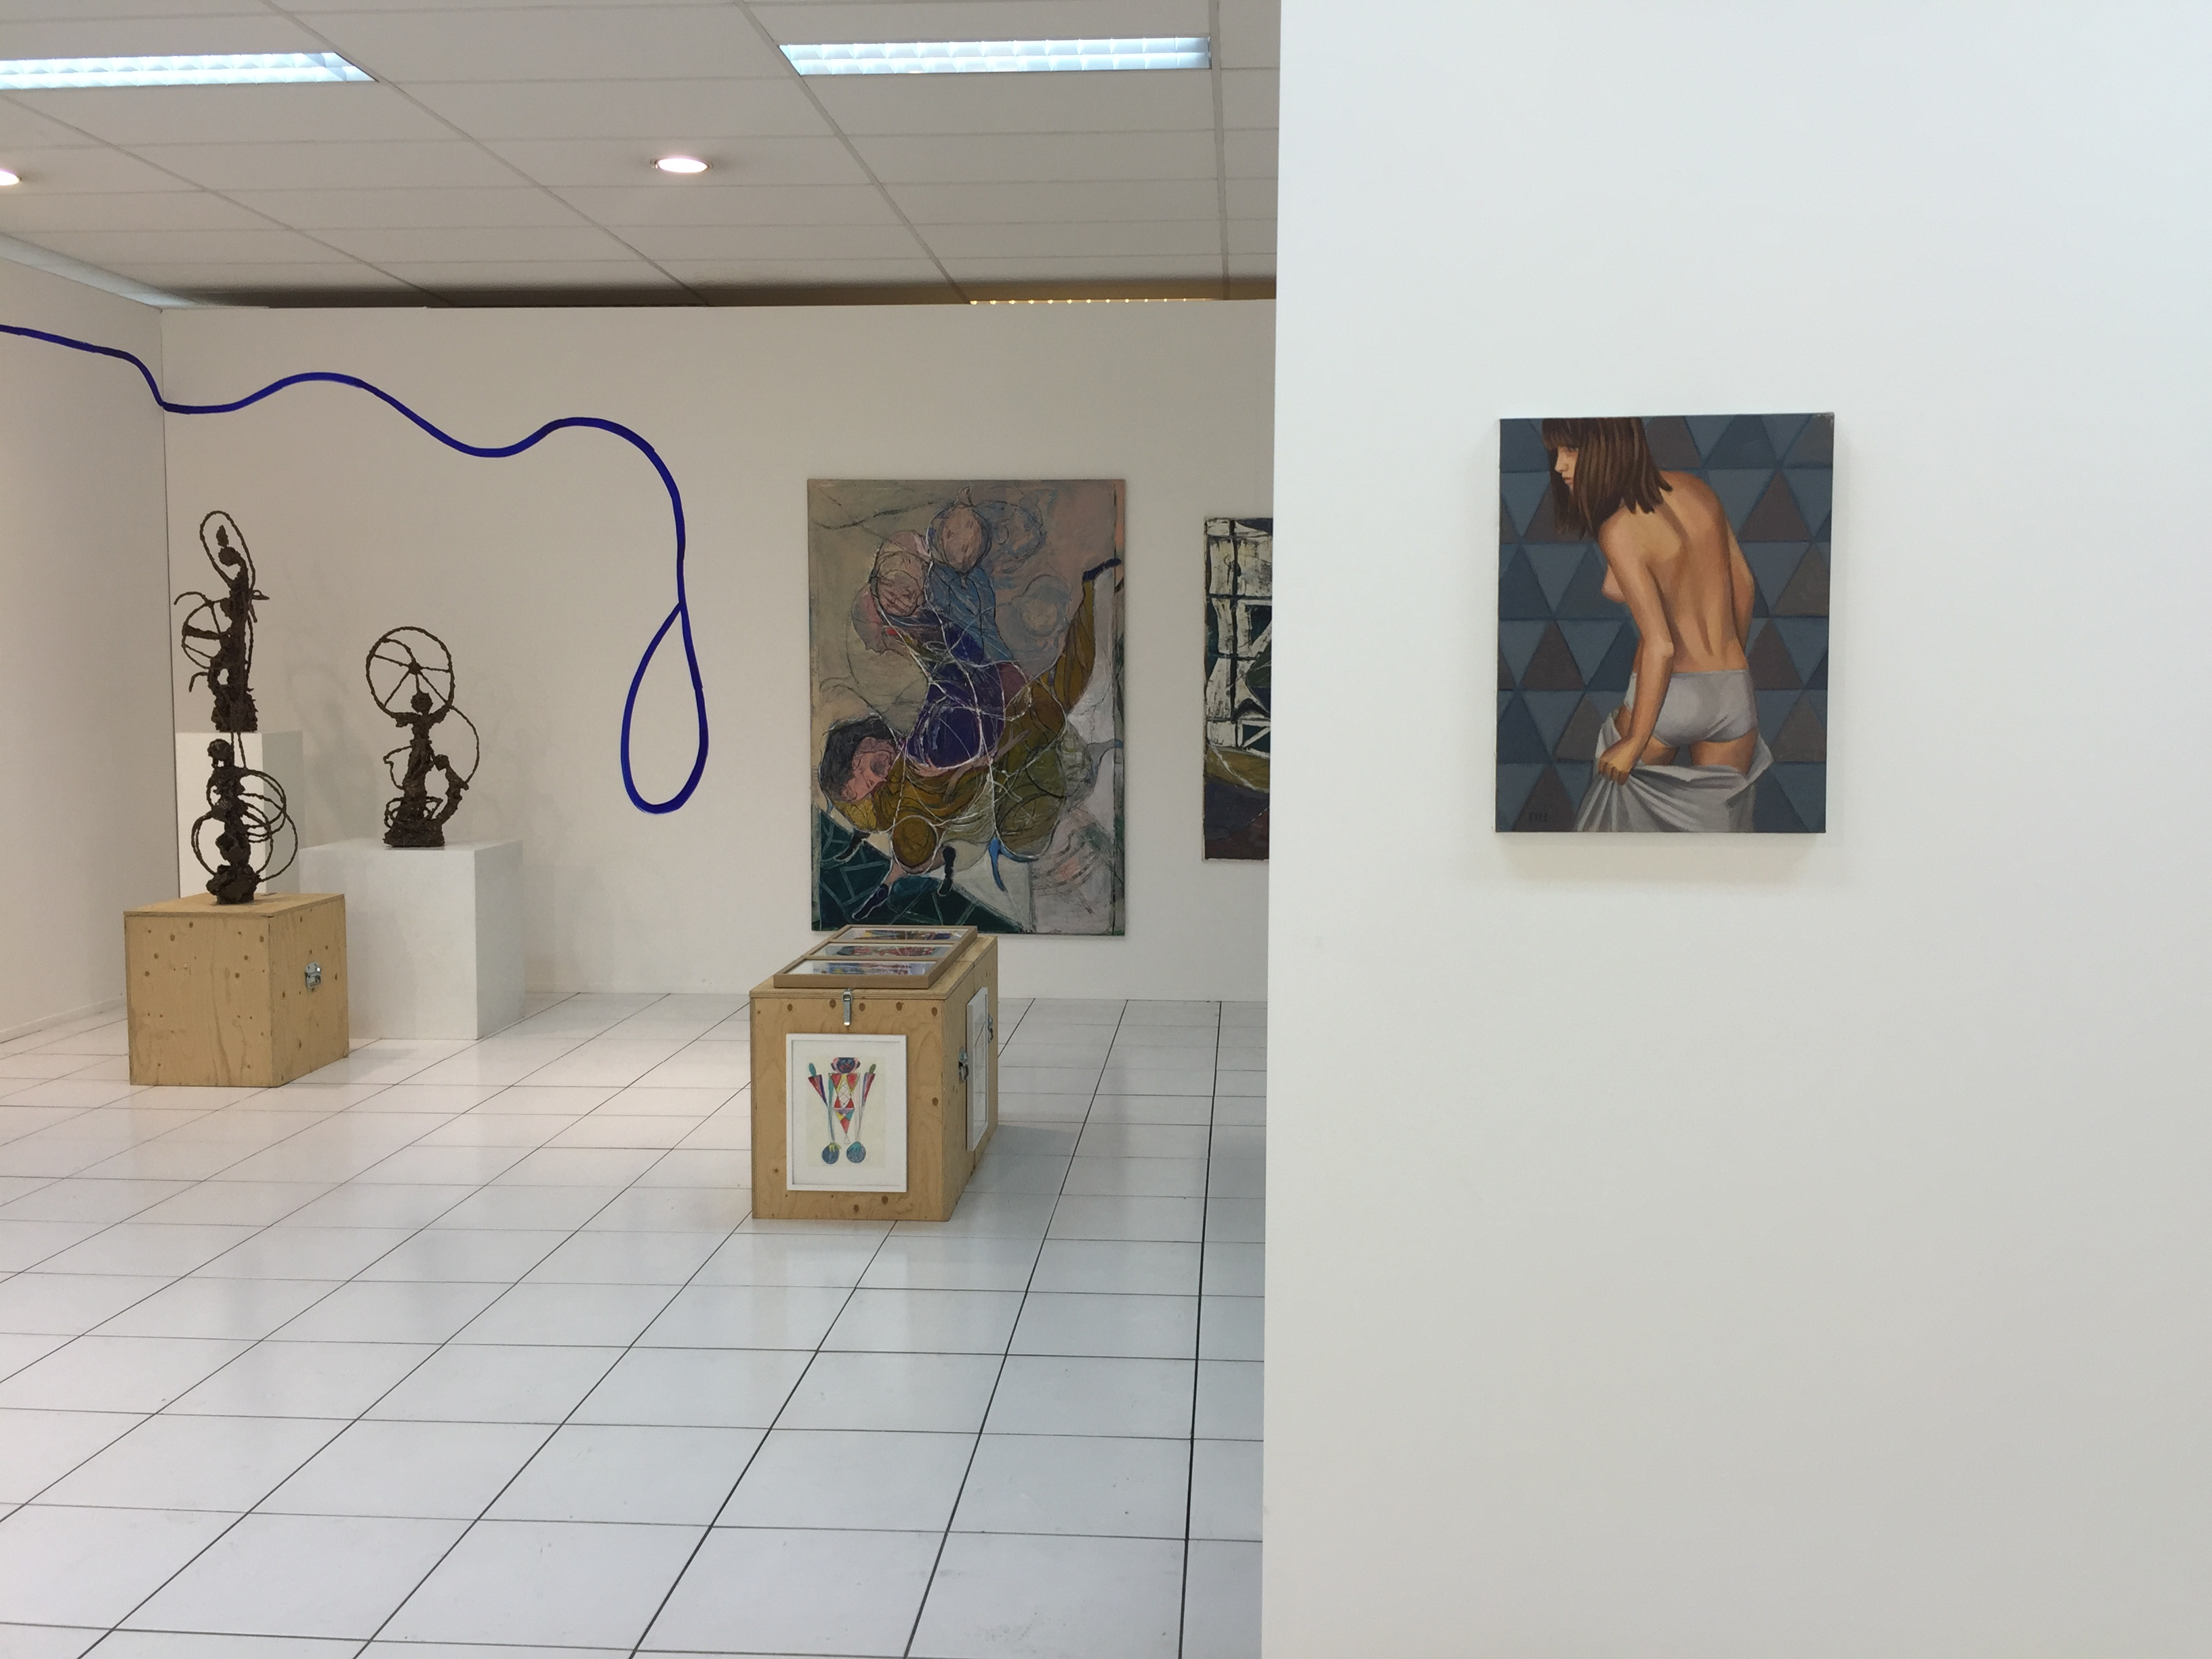 Exhibition view AAF 2015 - Ornis A. Gallery 19